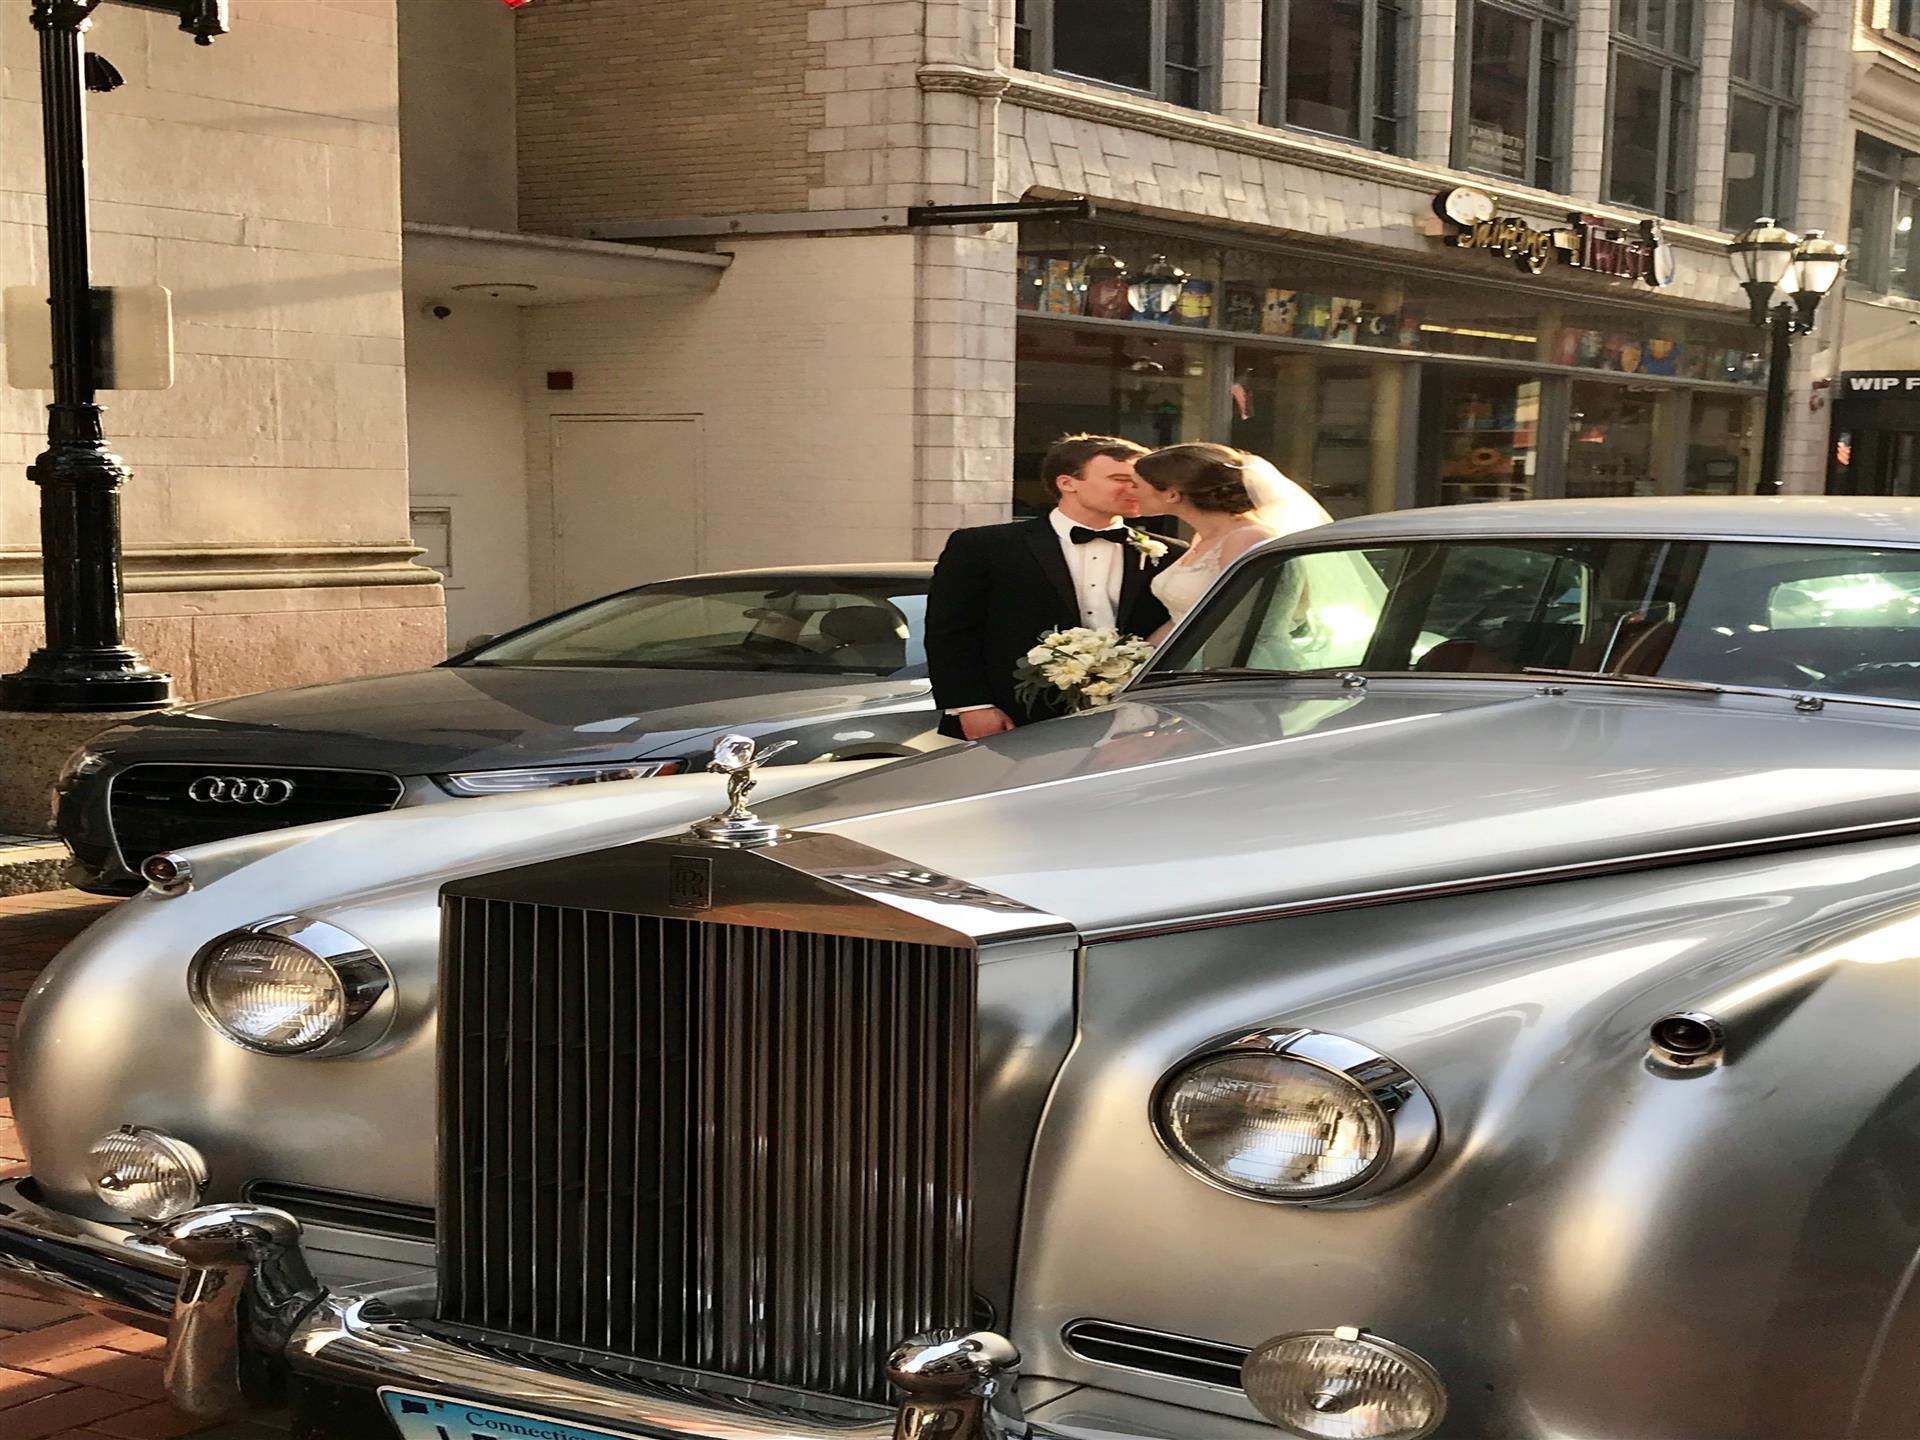 Bride and groom standing next to rolls royce in street kissing